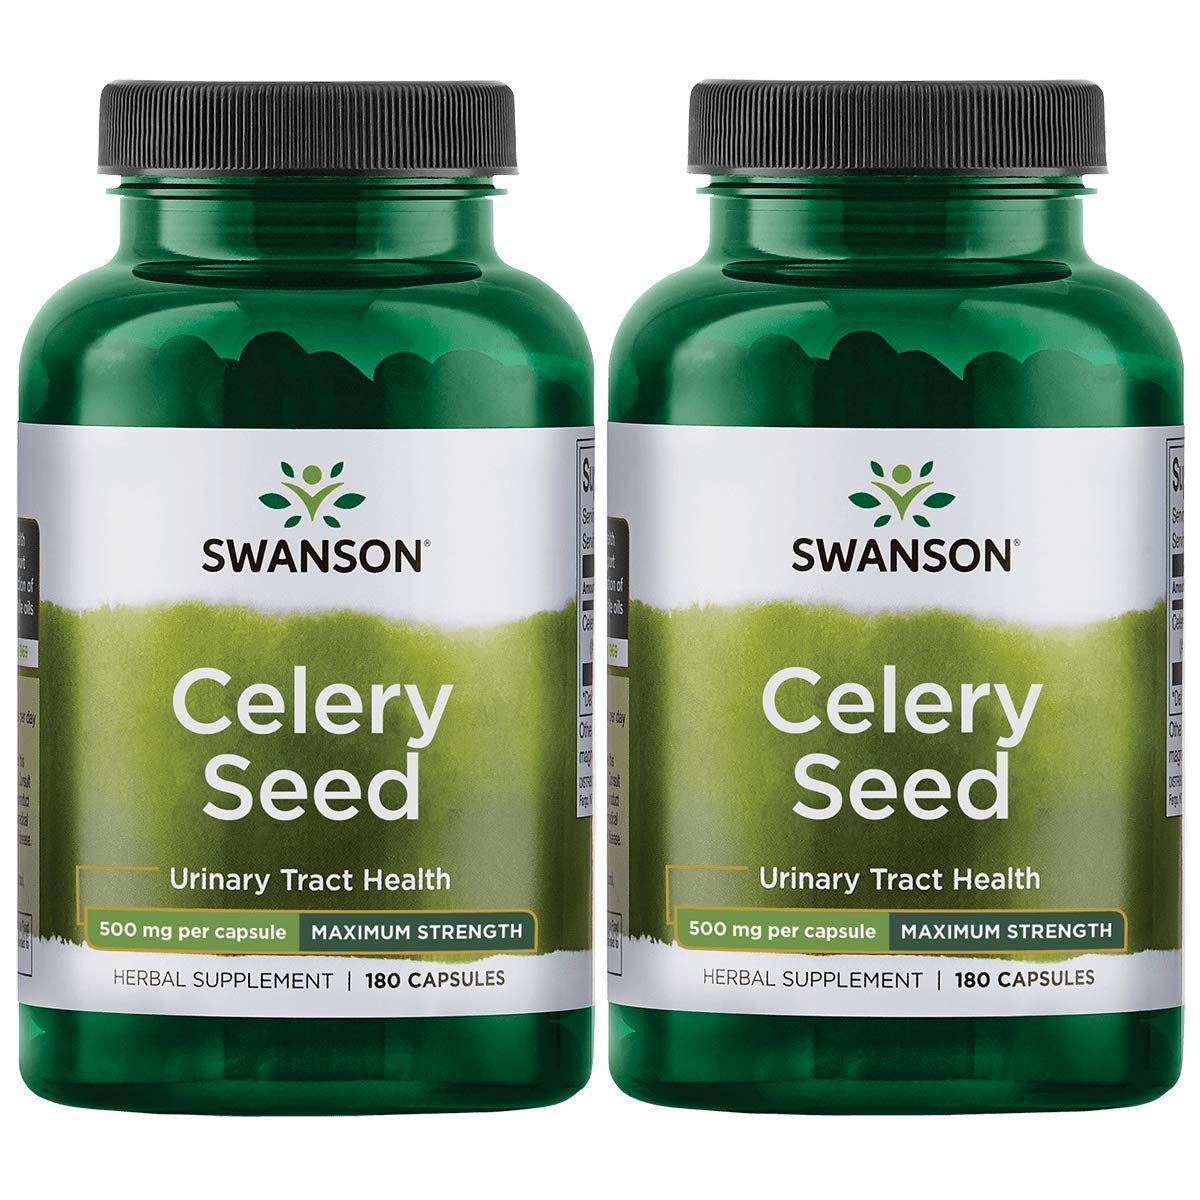 Swanson Celery Seed Extract (Cellery) Urinary Health Antioxidant Support Phytochemicals Volatile Oils Supplement Maximum Strength 500 mg 180 Capsules (2 Pack)